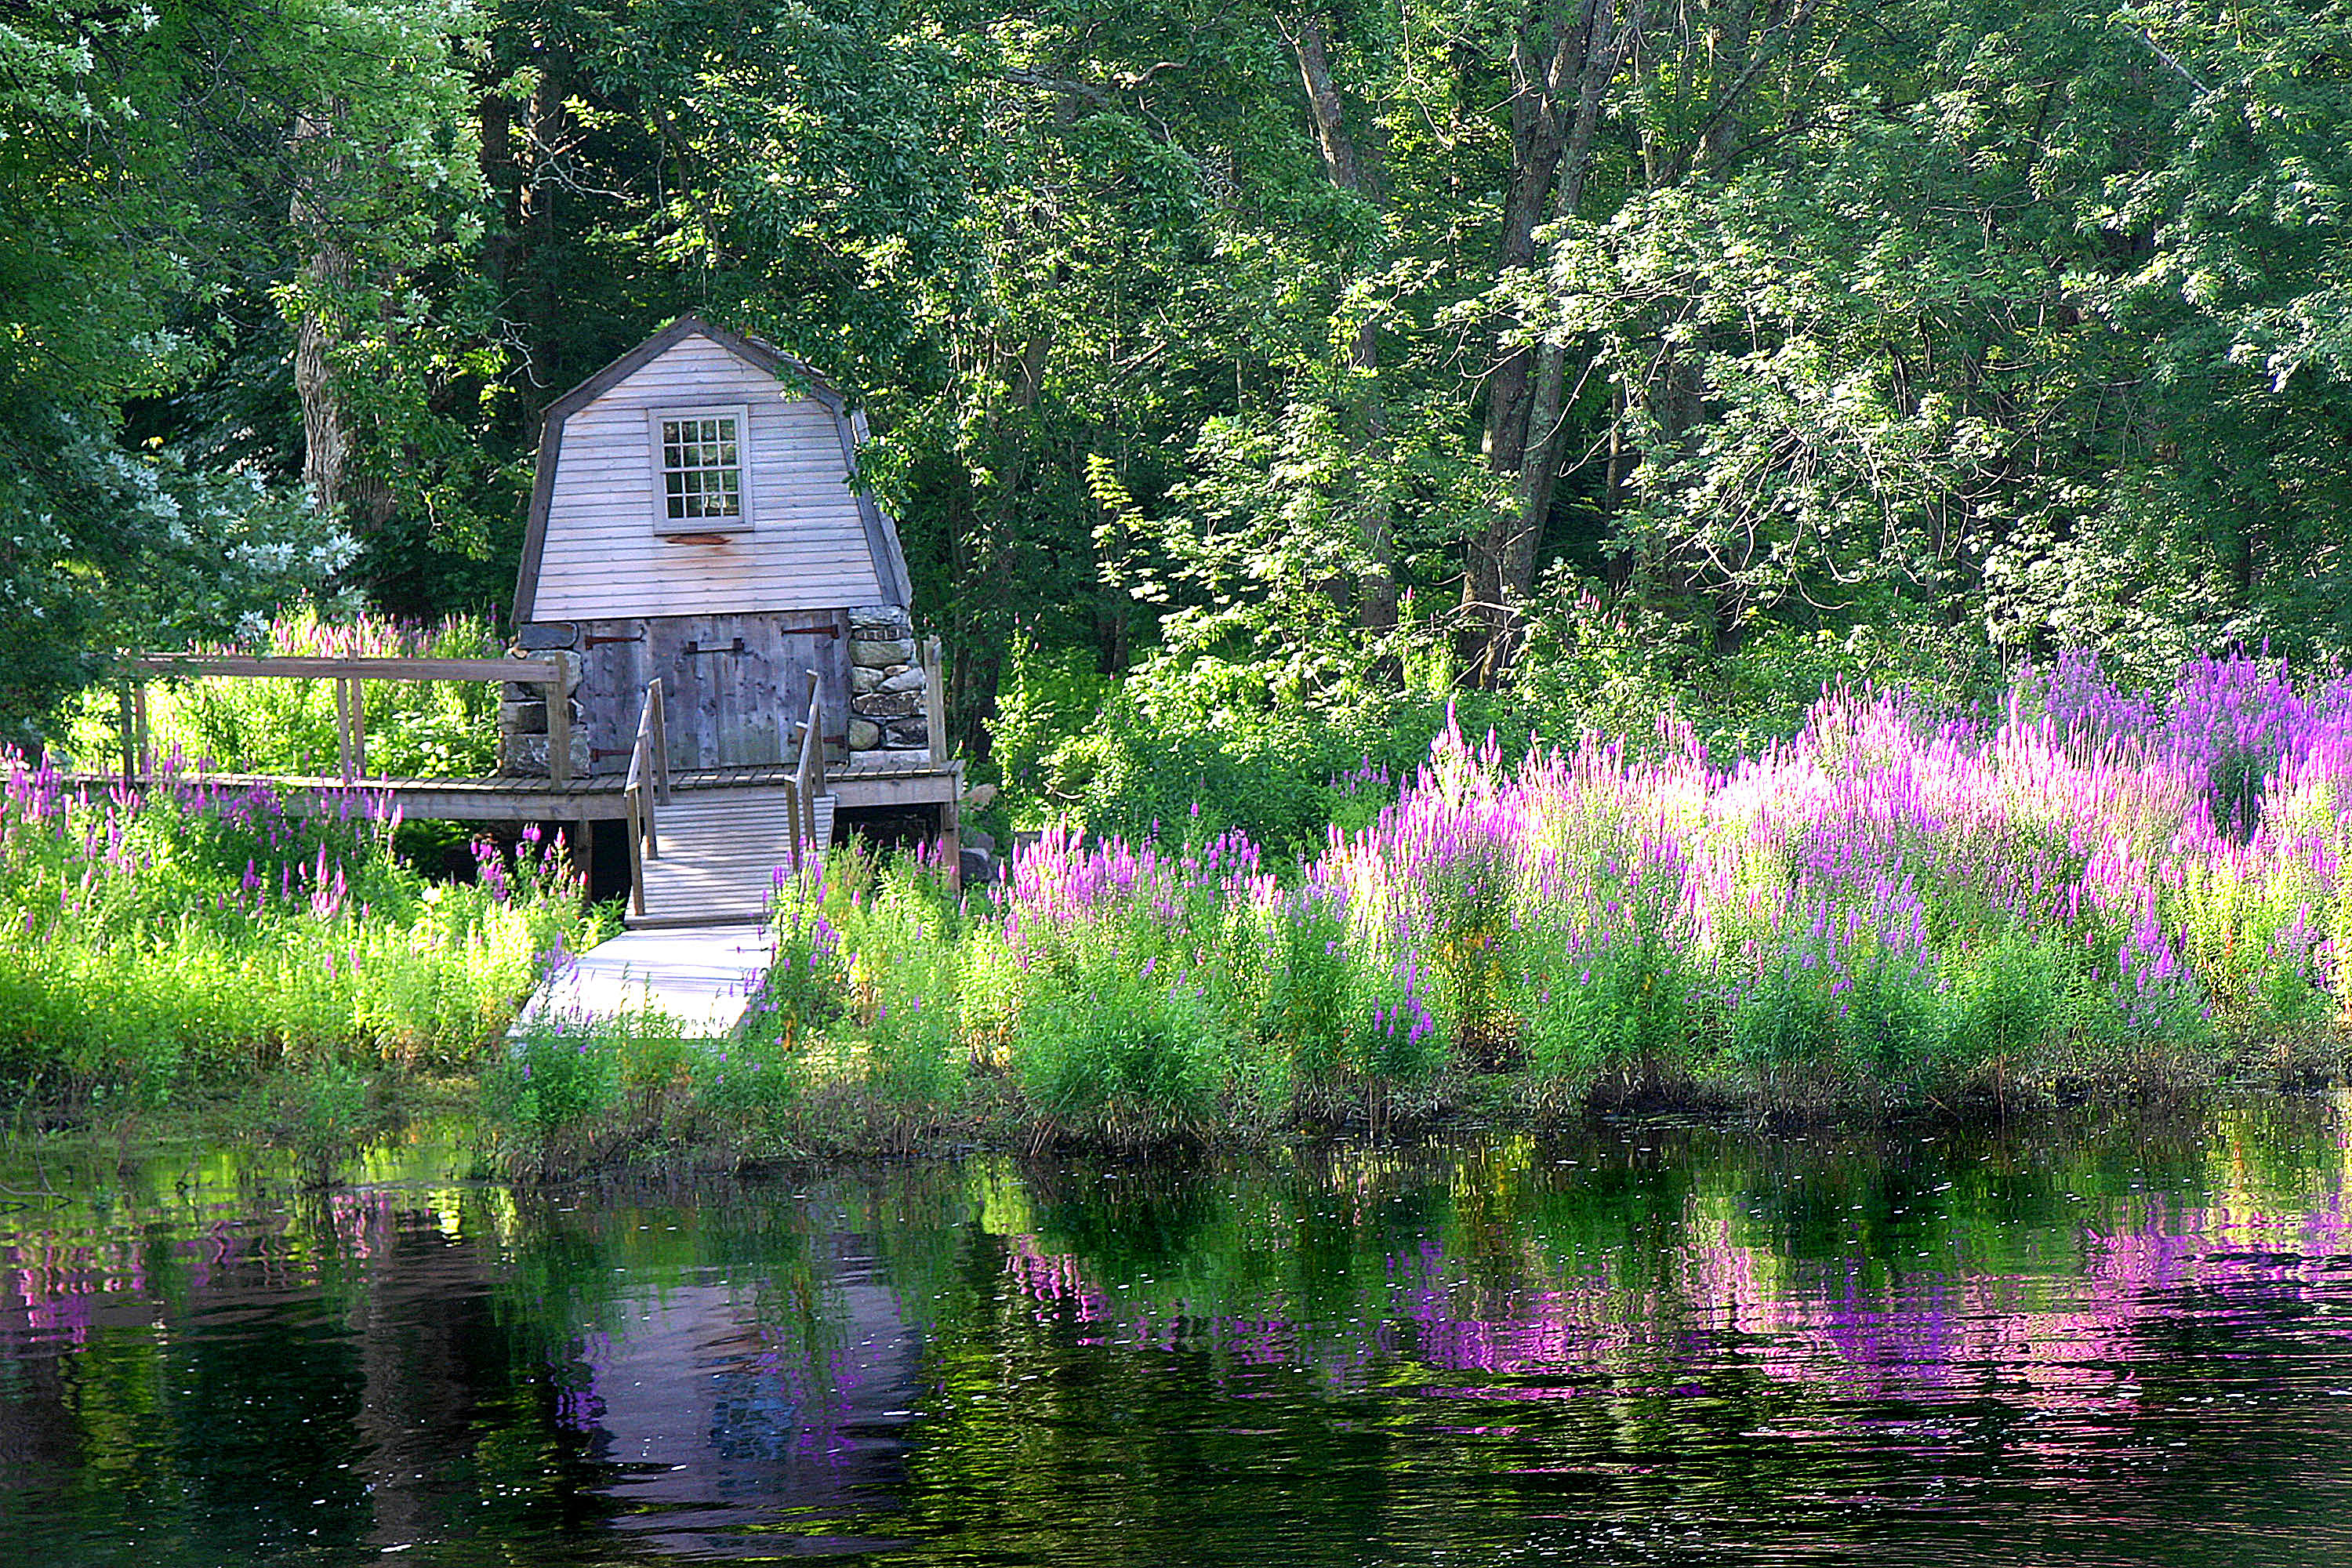 Boat house at the Olde Manse